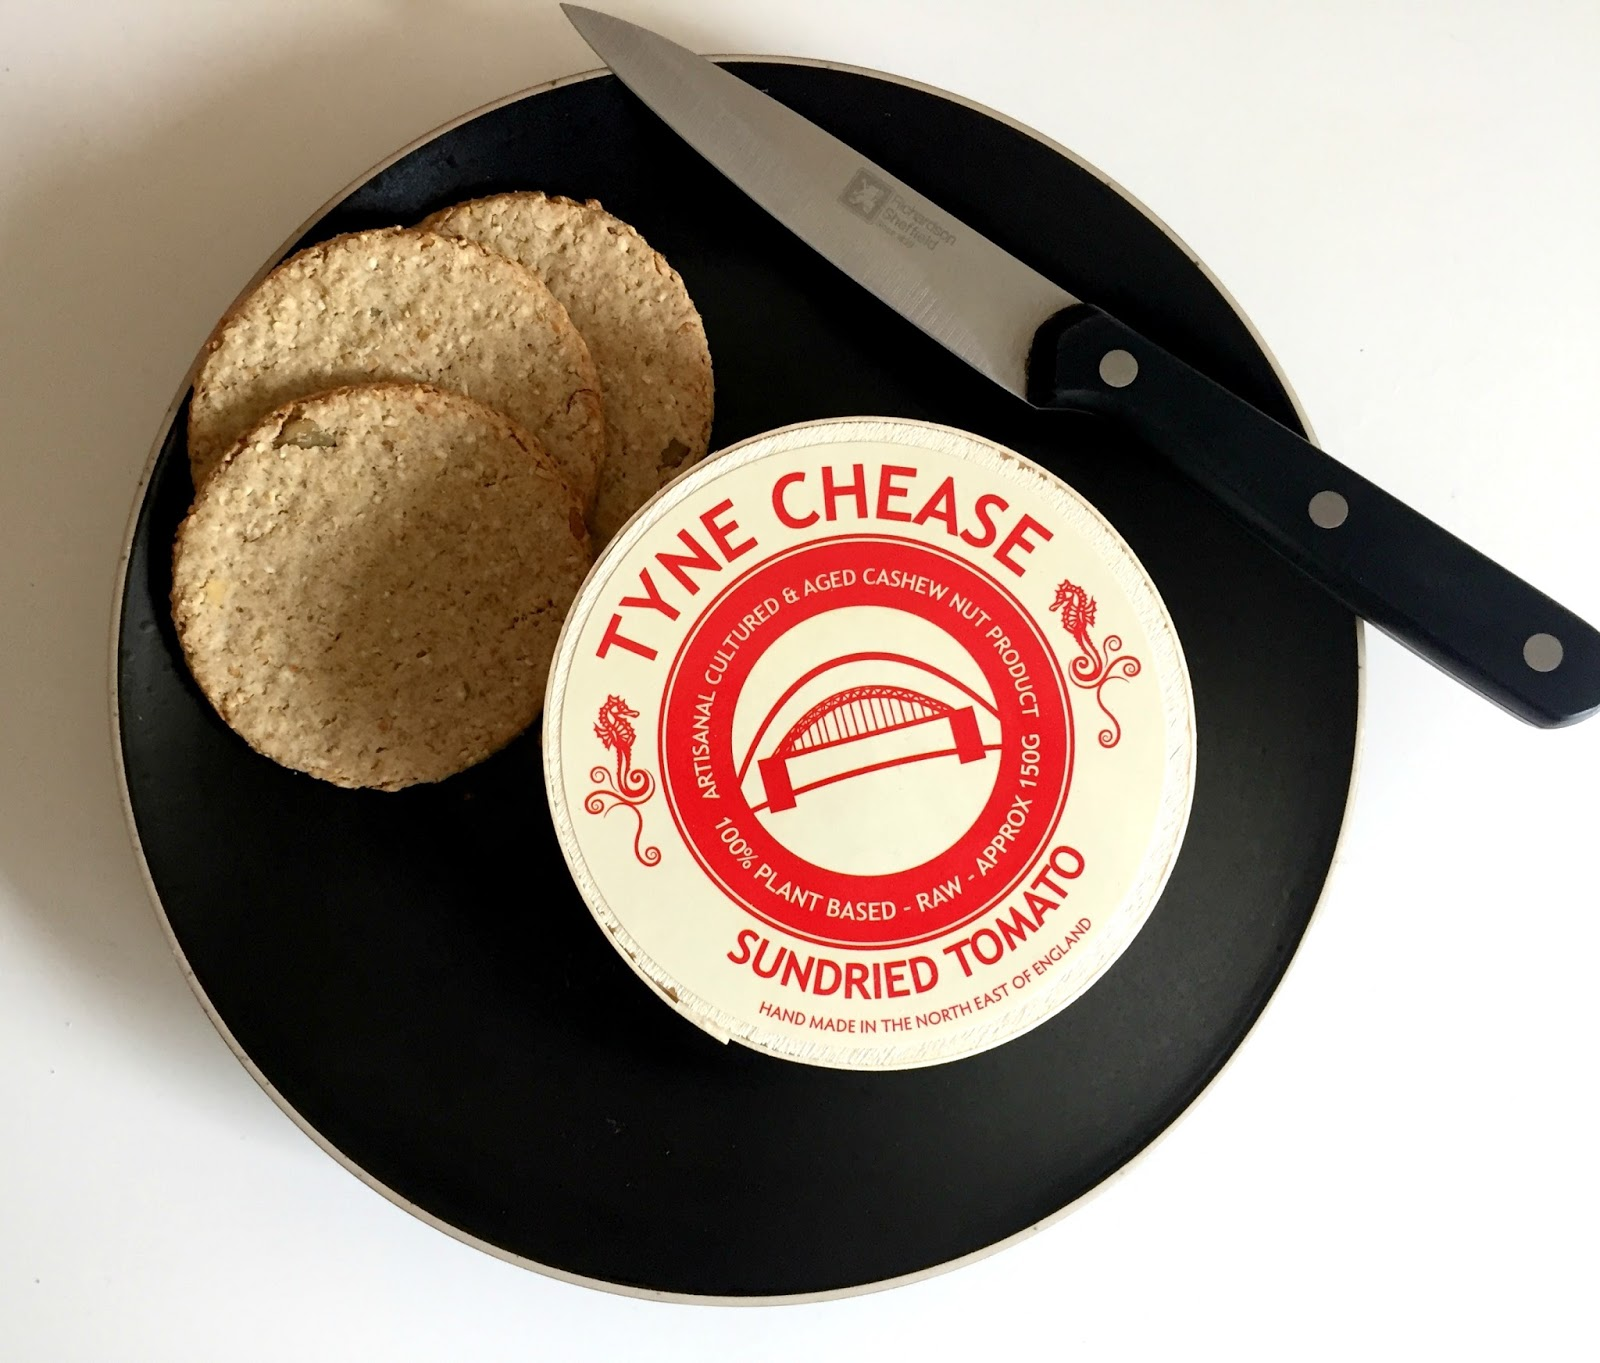 Tyne Chease Sundried Tomato Review